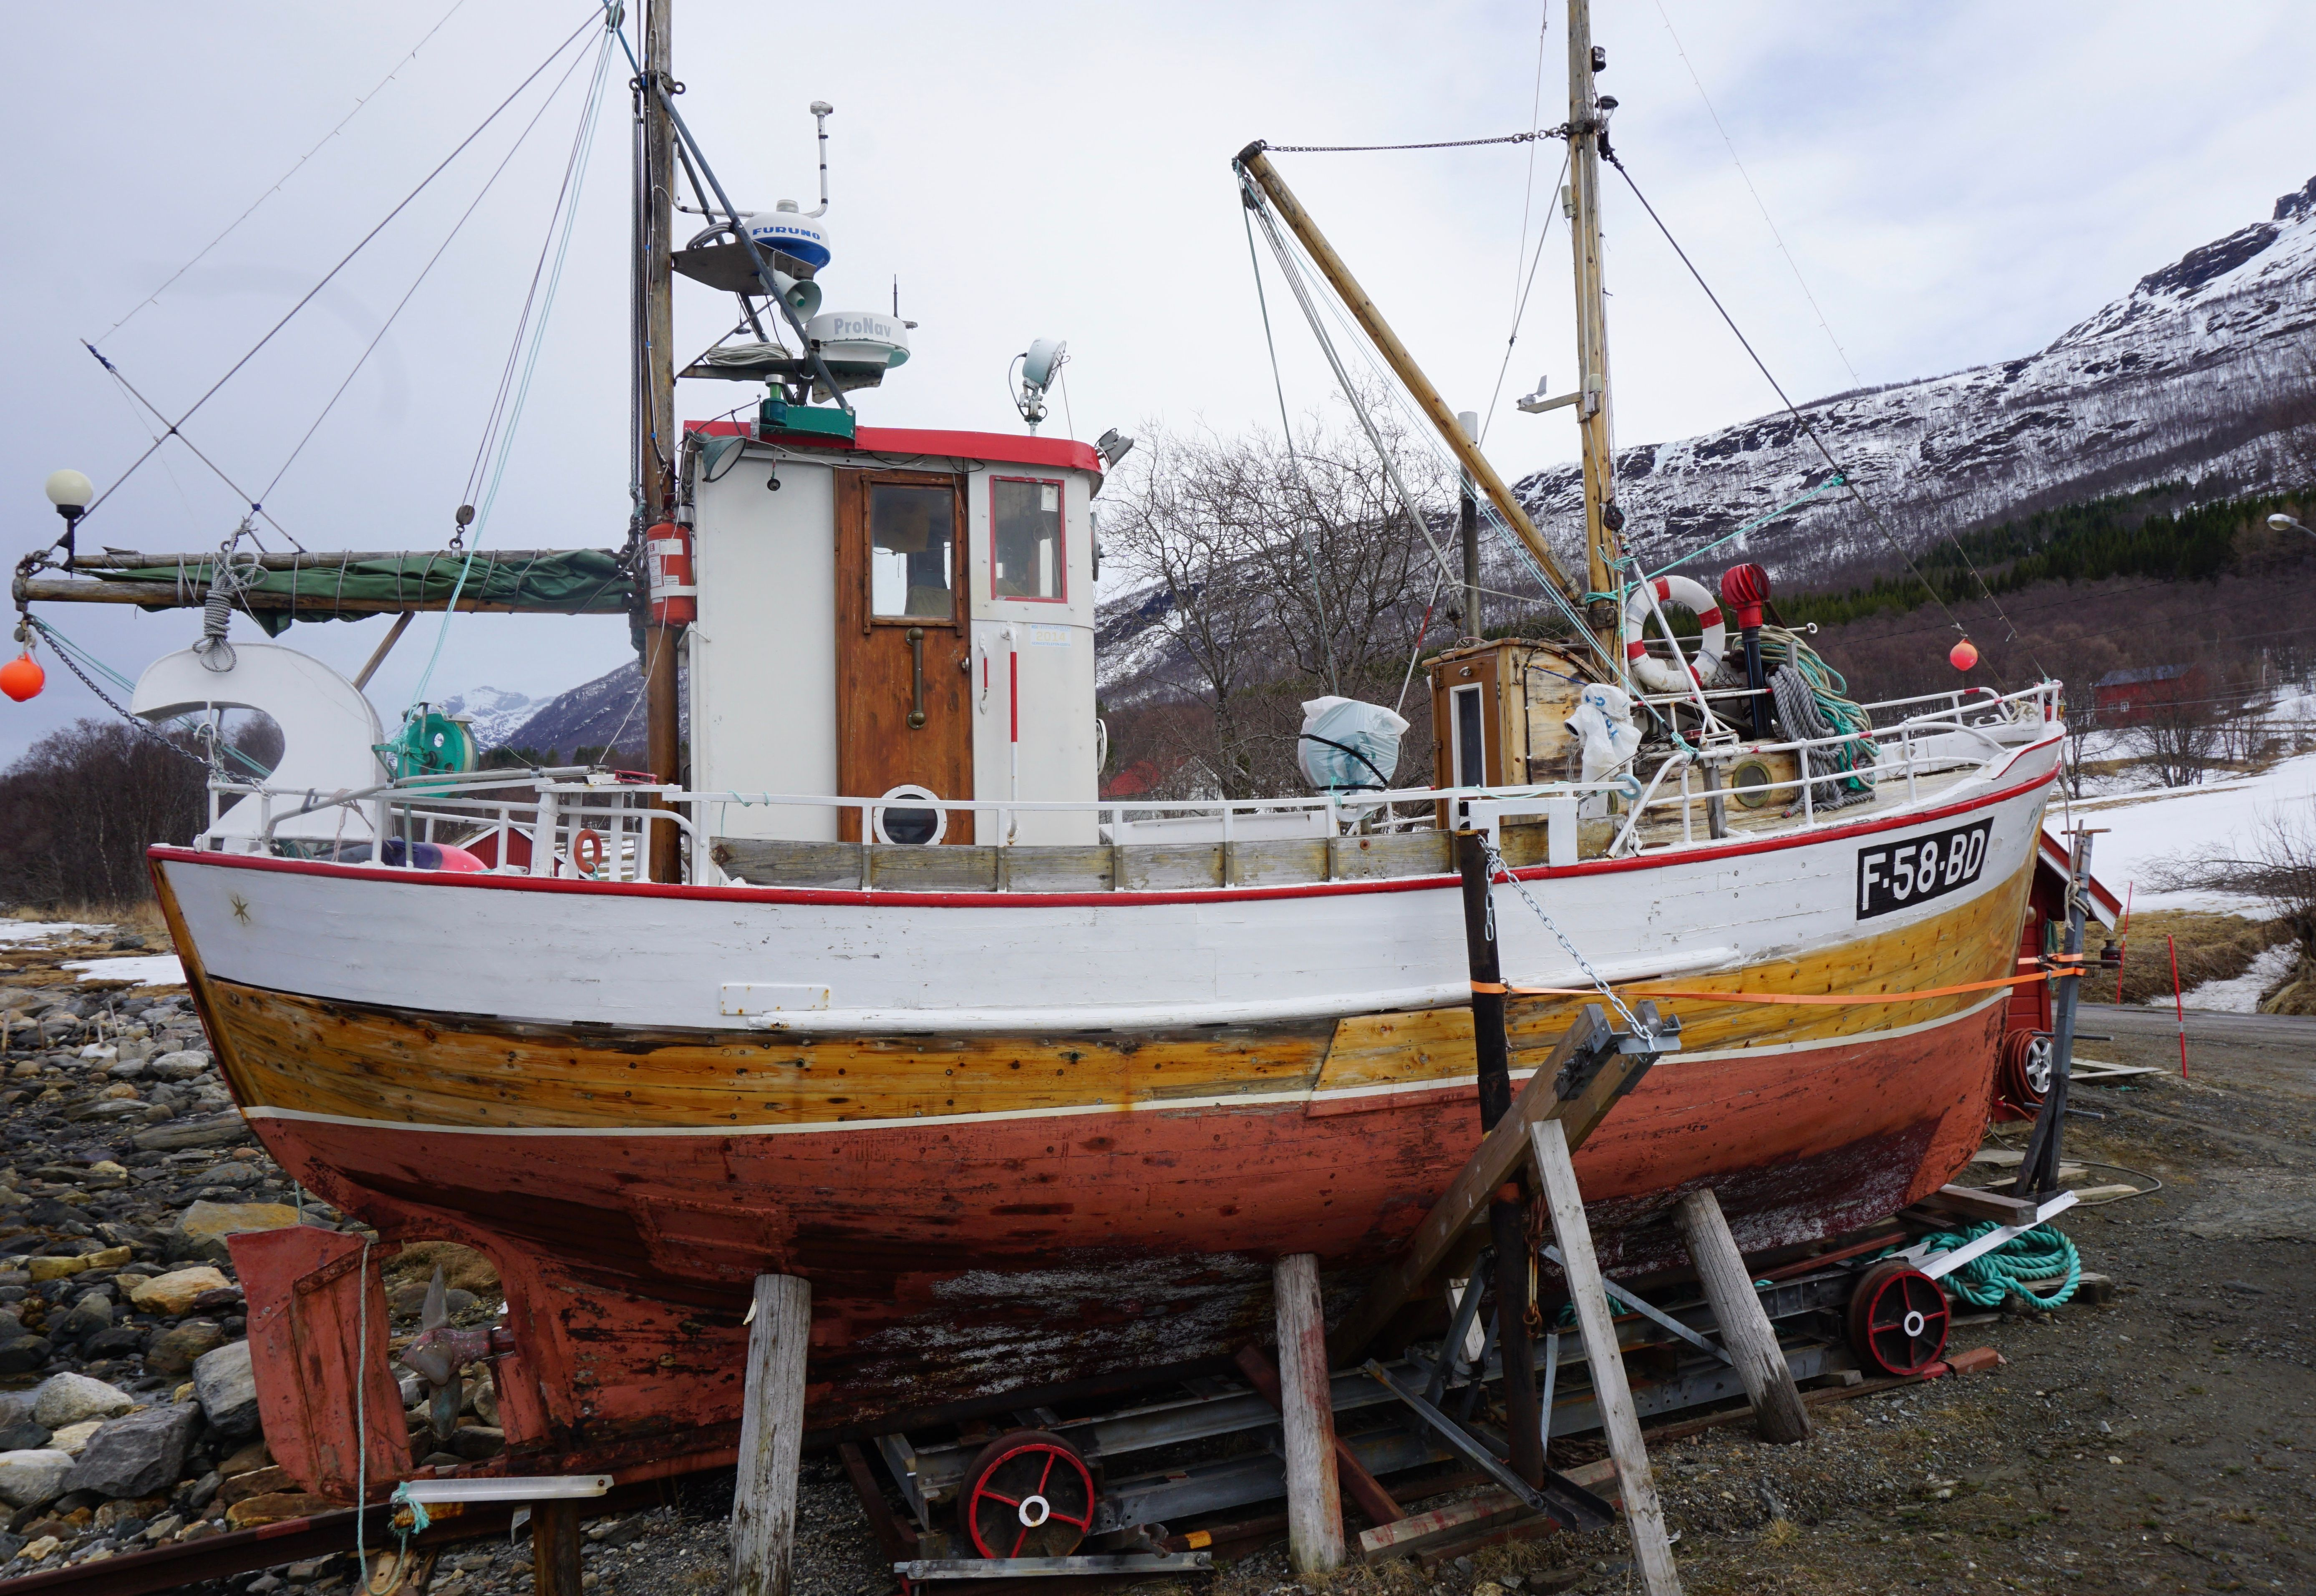 Fishing boats. Old and new Time. — Steemit